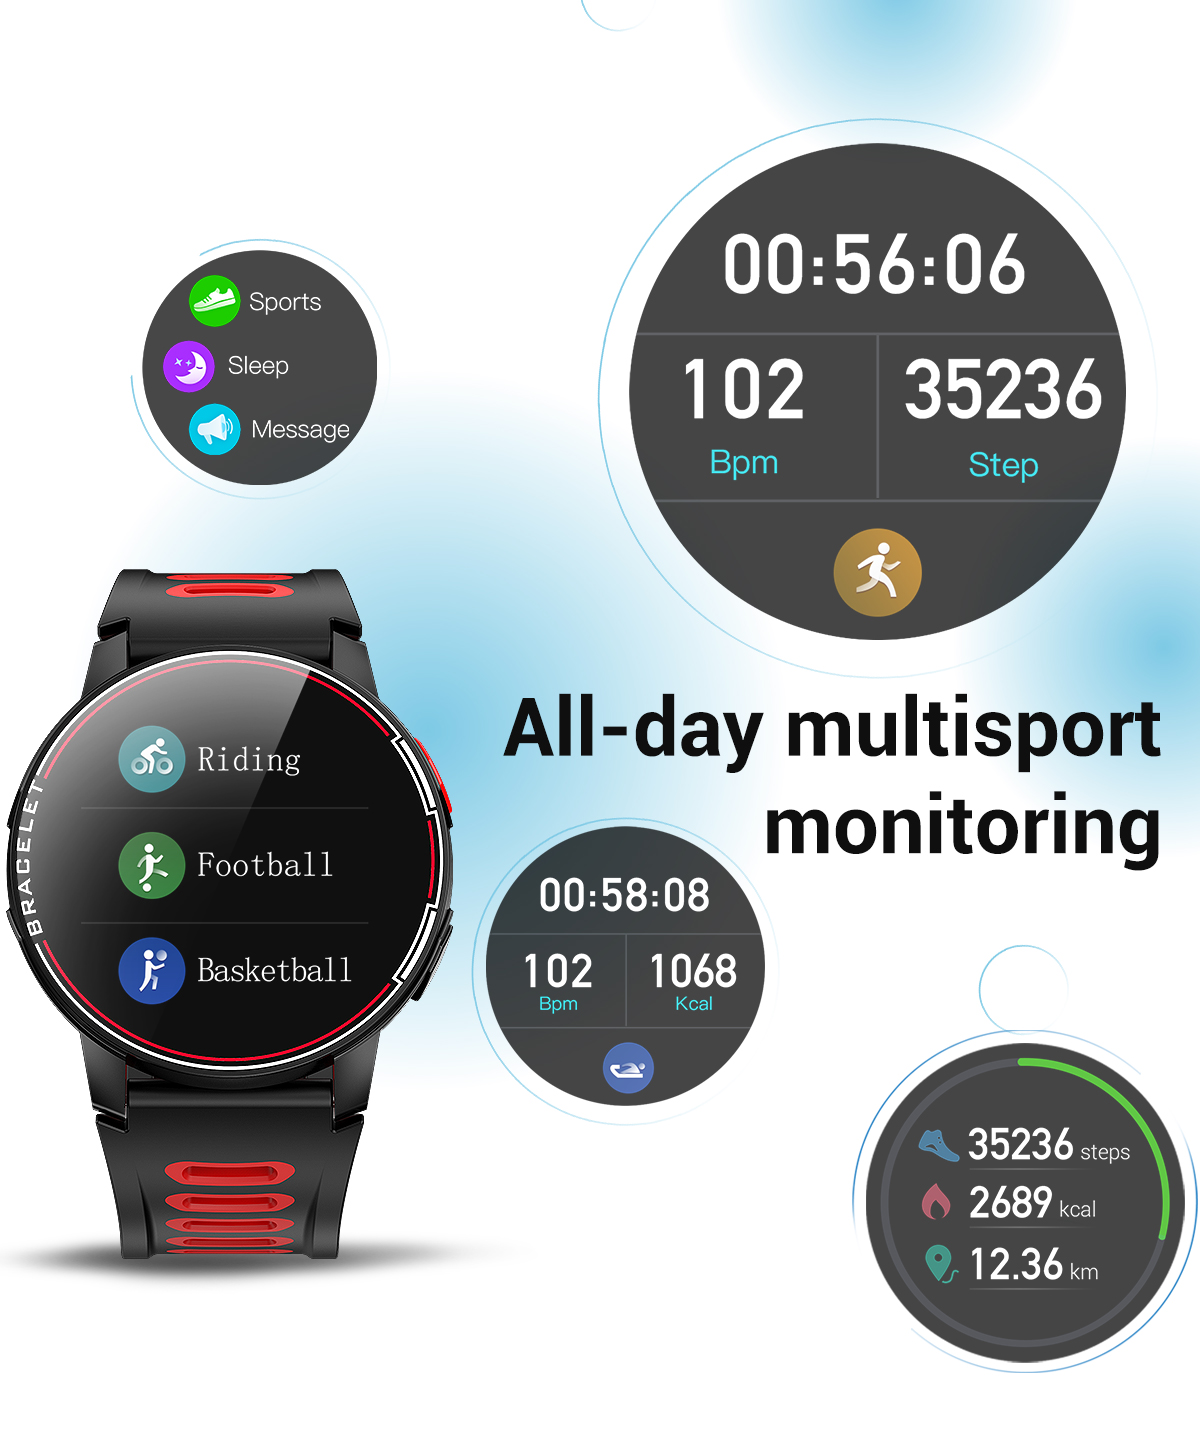 H22f65c45243f4fbcbce2c5fd0f1d01ffD 2020 New L6 Smart Watch IP68 Waterproof Sport Men Women Bluetooth Smartwatch Fitness Tracker Heart Rate Monitor For Android IOS